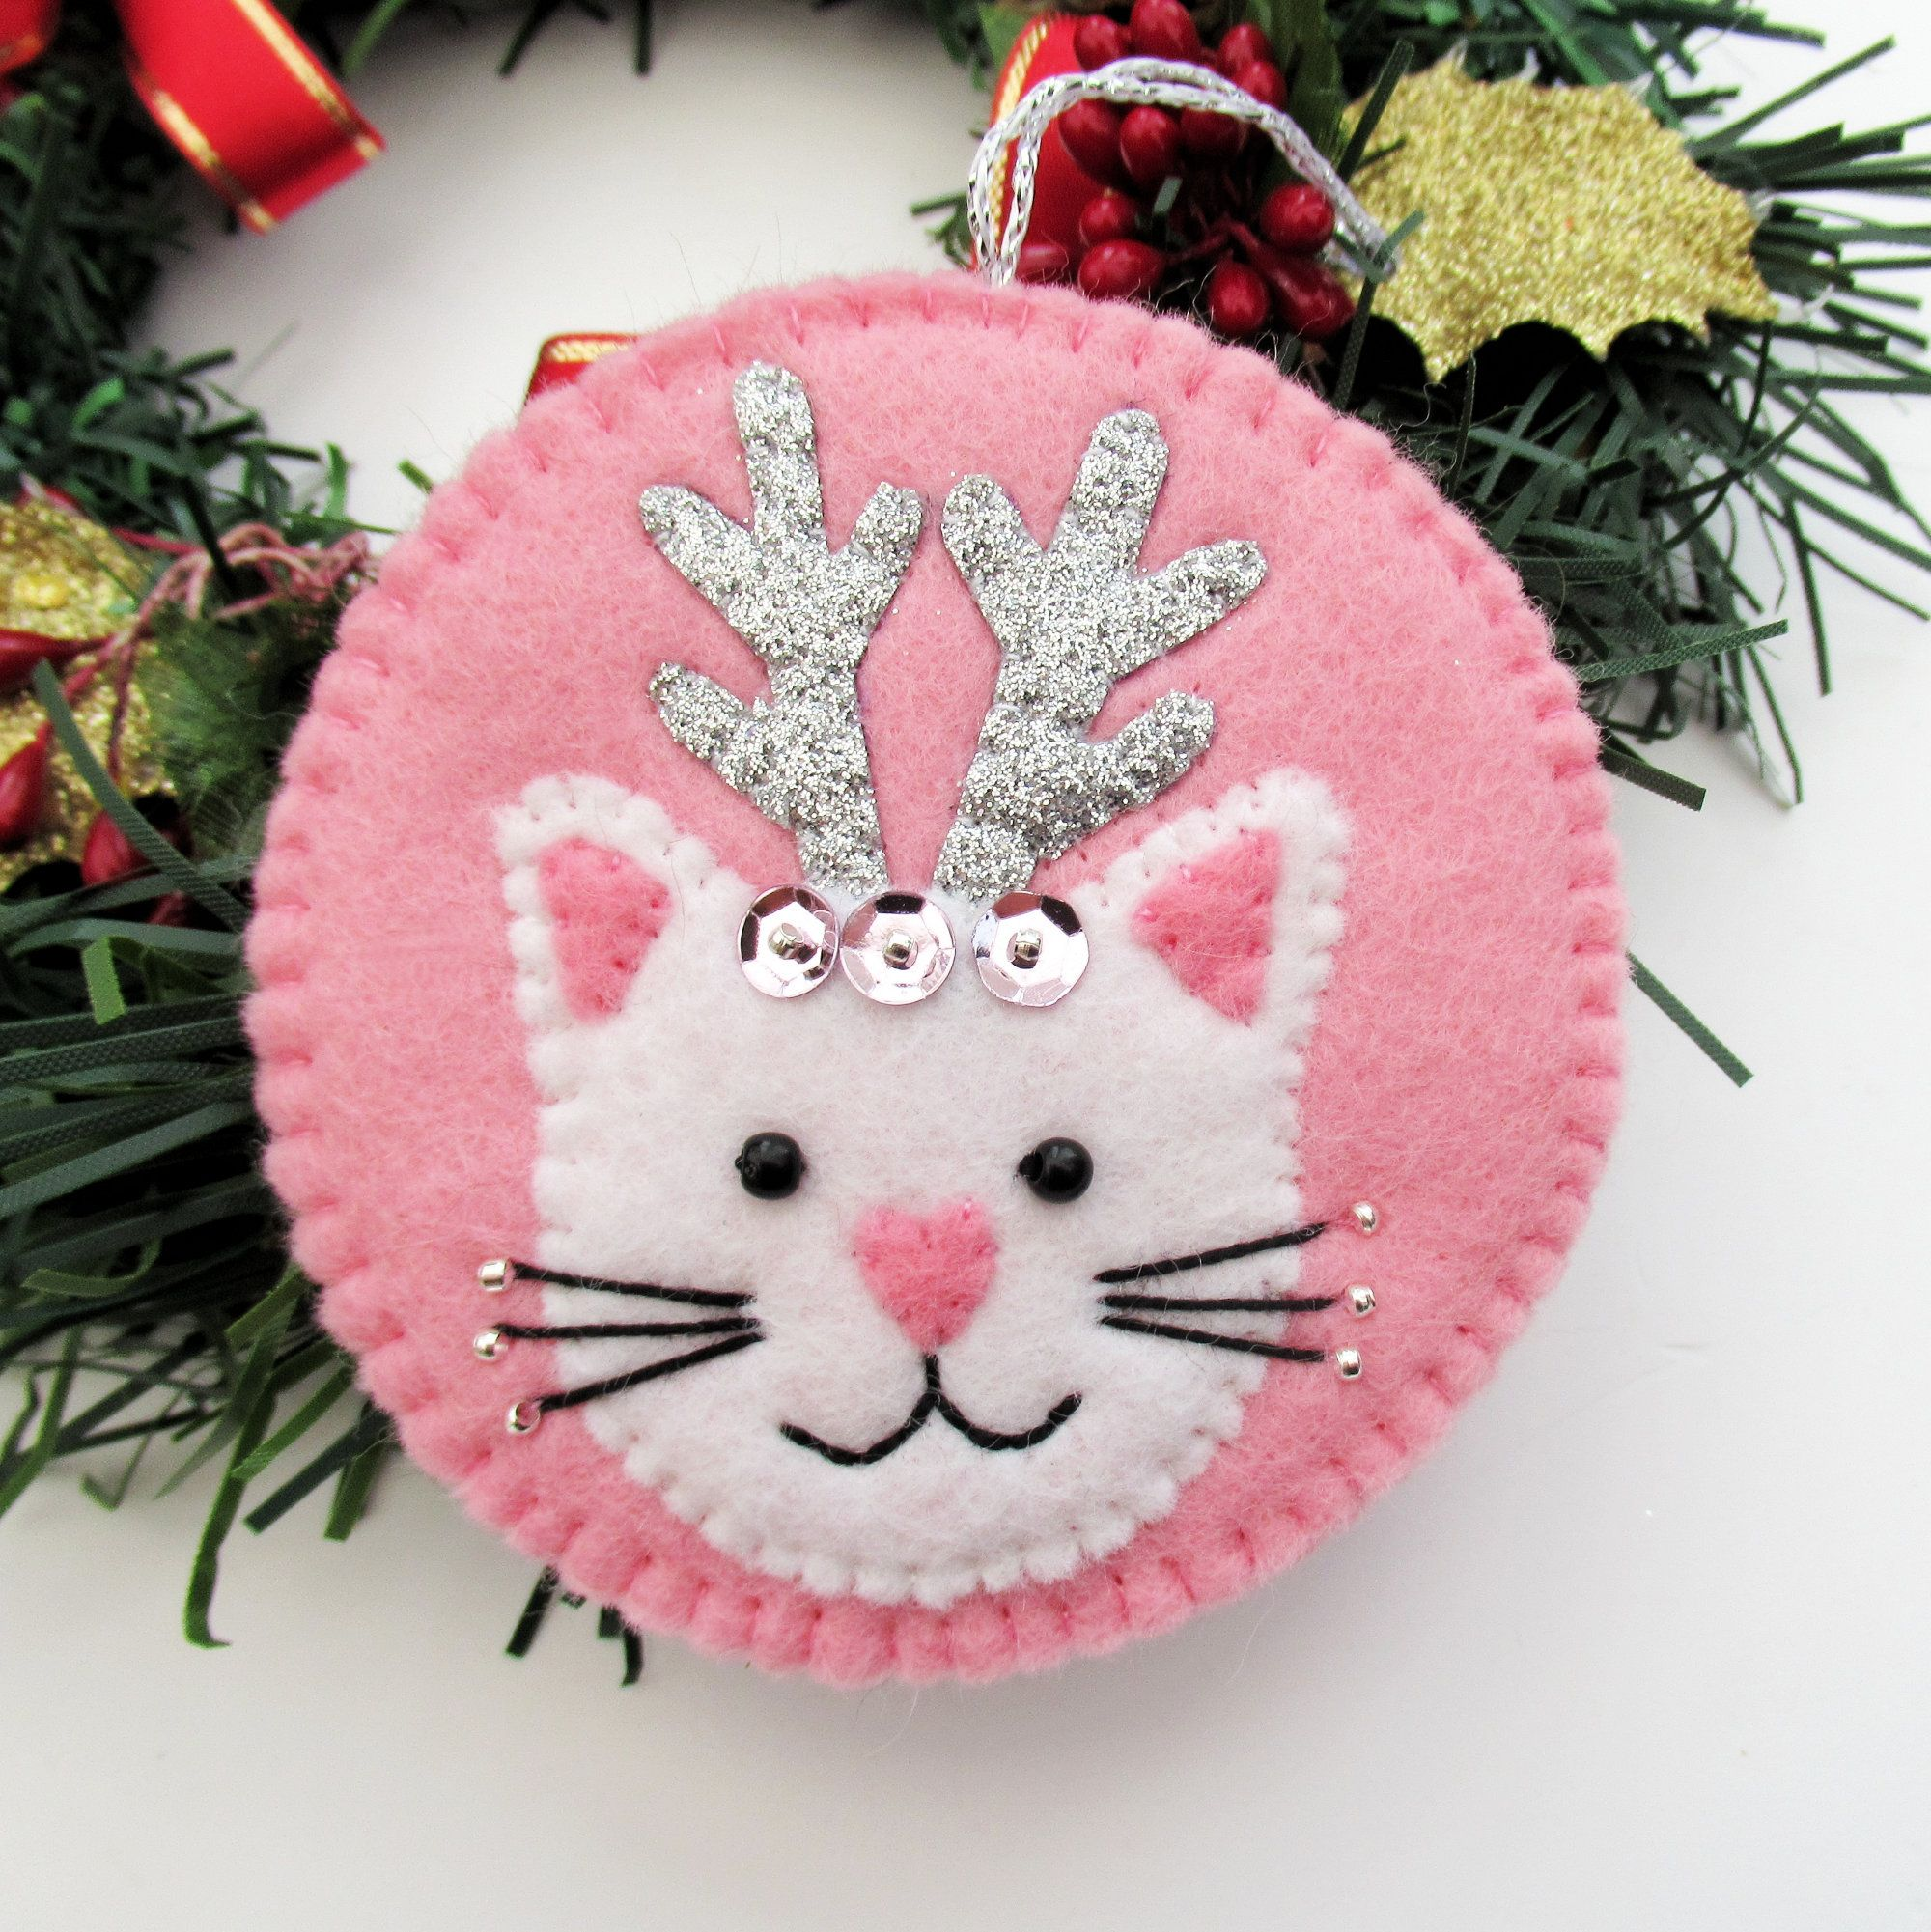 Cat With Antlers Christmas Tree Felt Ornament Decoration Cat Lover Gift Christmas Cat Decor Pink Christmas Ornament Felt Ornaments Felt Crafts Christmas Pink Christmas Ornaments